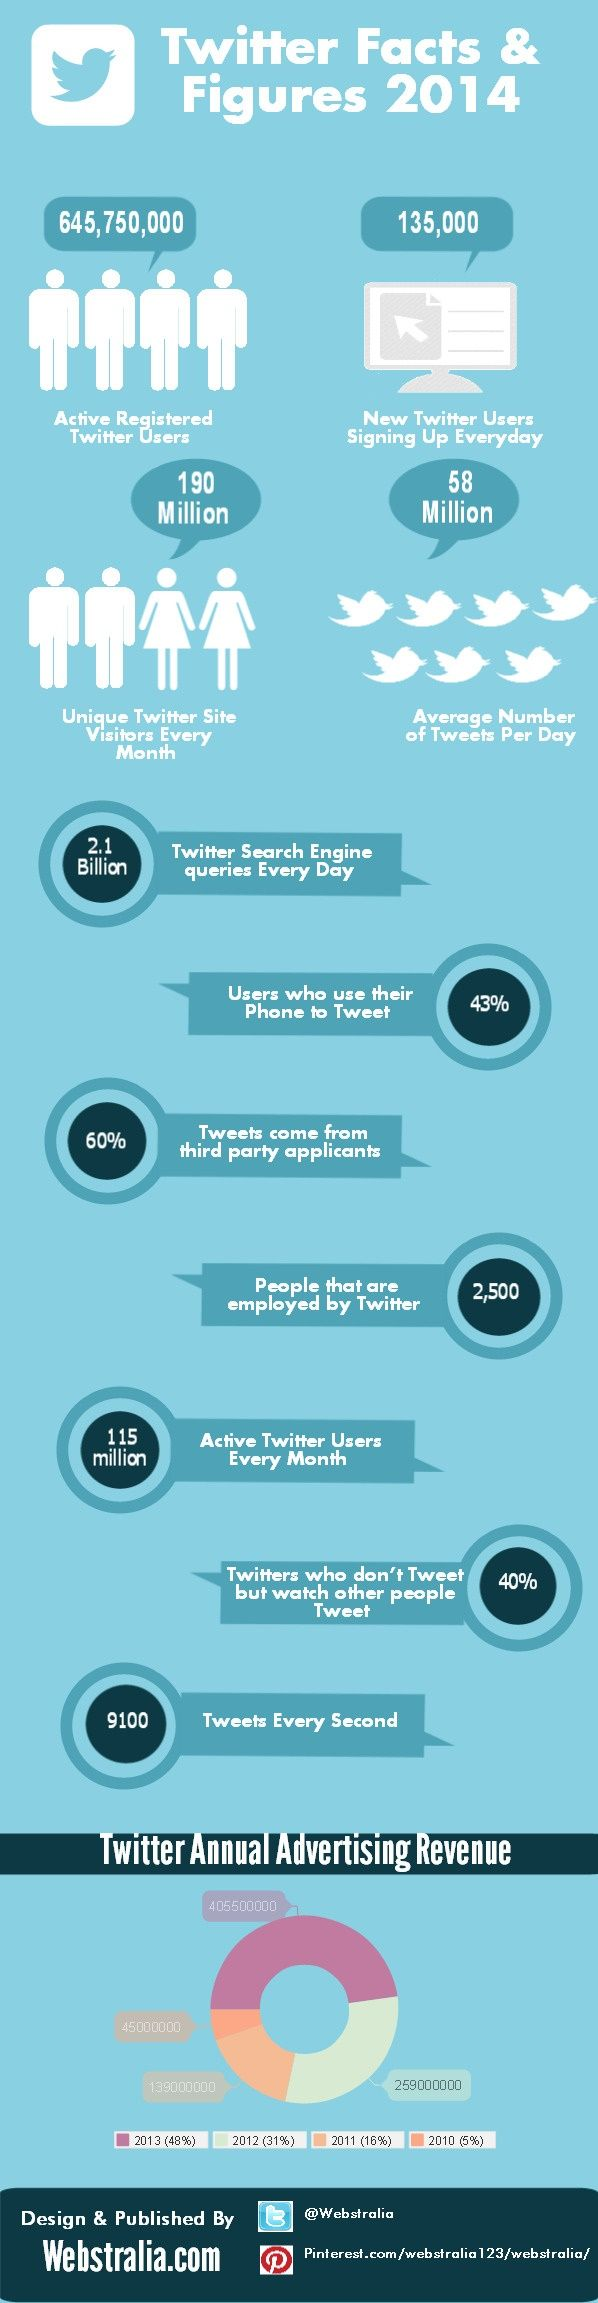 Twitter Facts And Figures 2014  #Infographic #Twitter #Facts